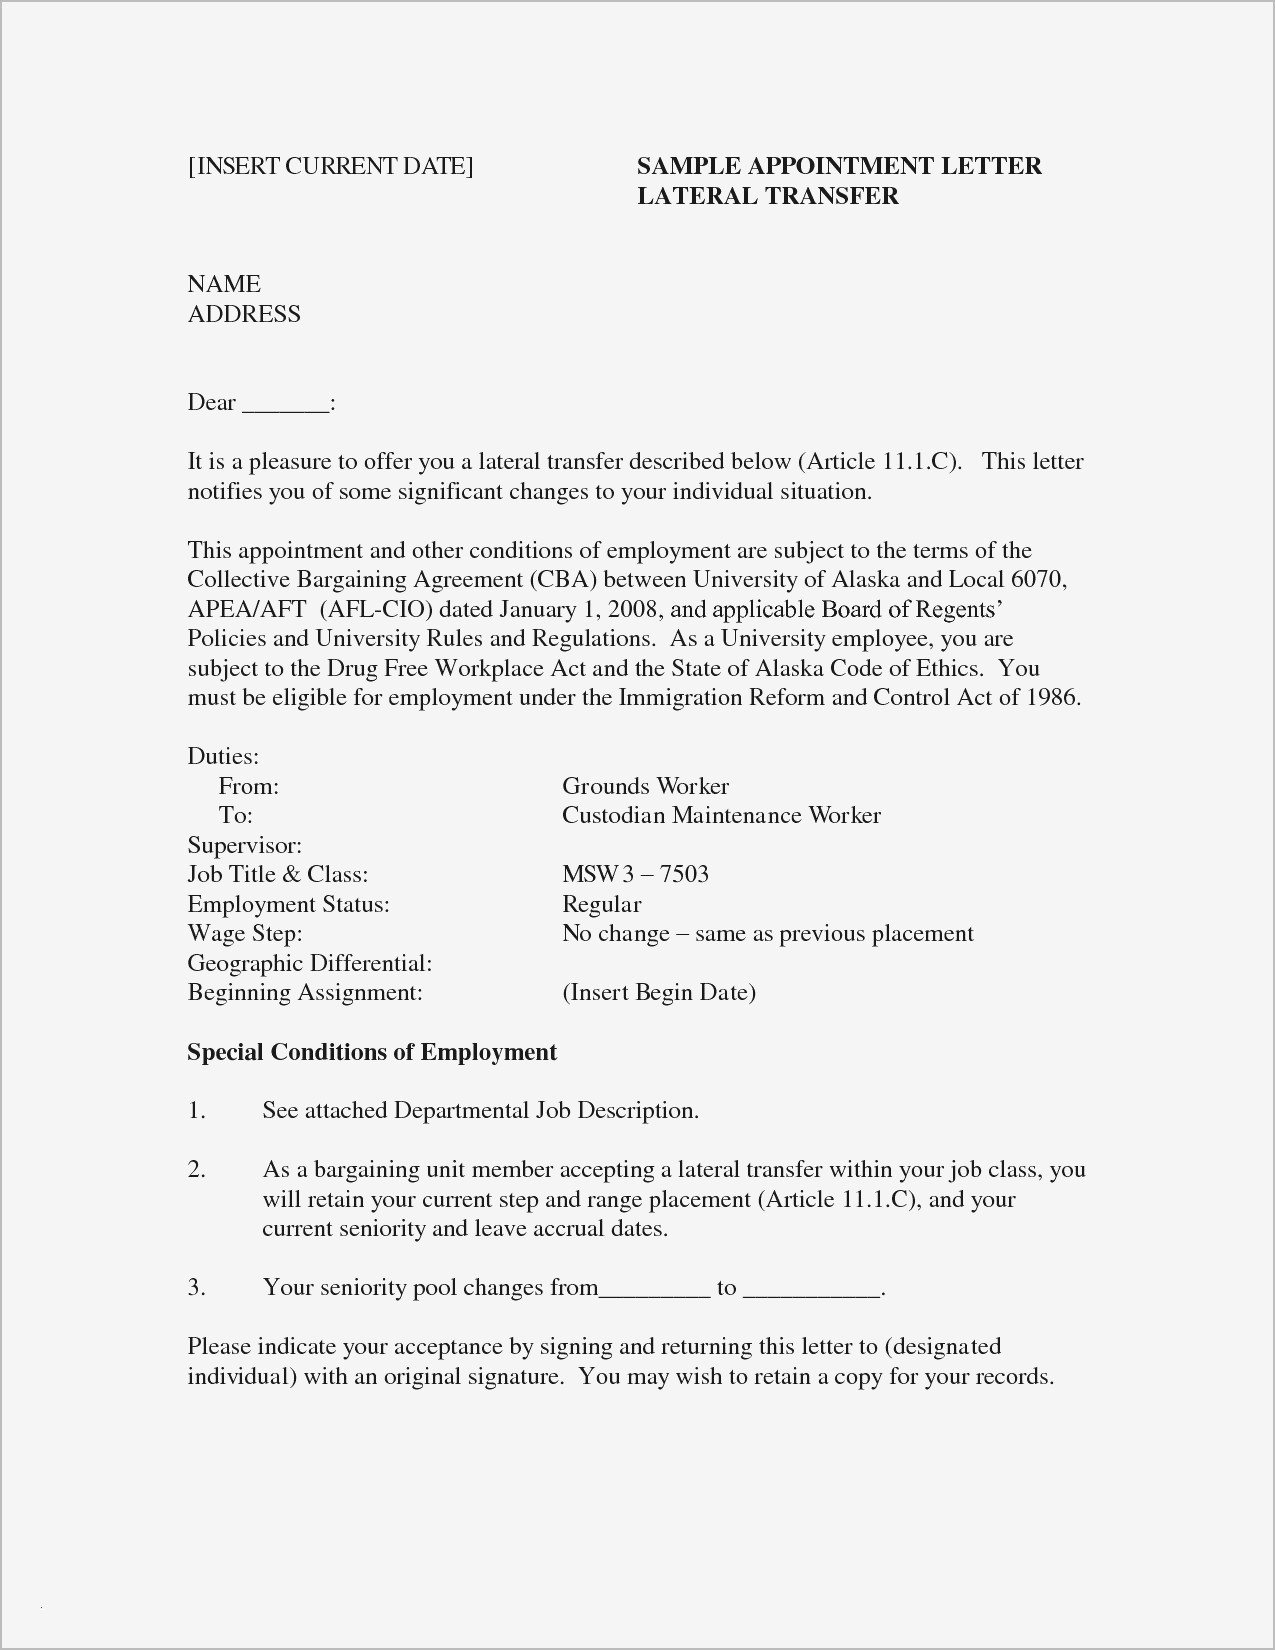 Resume Template Electrician - Electrical Engineer Resume Templates List Educational Resume